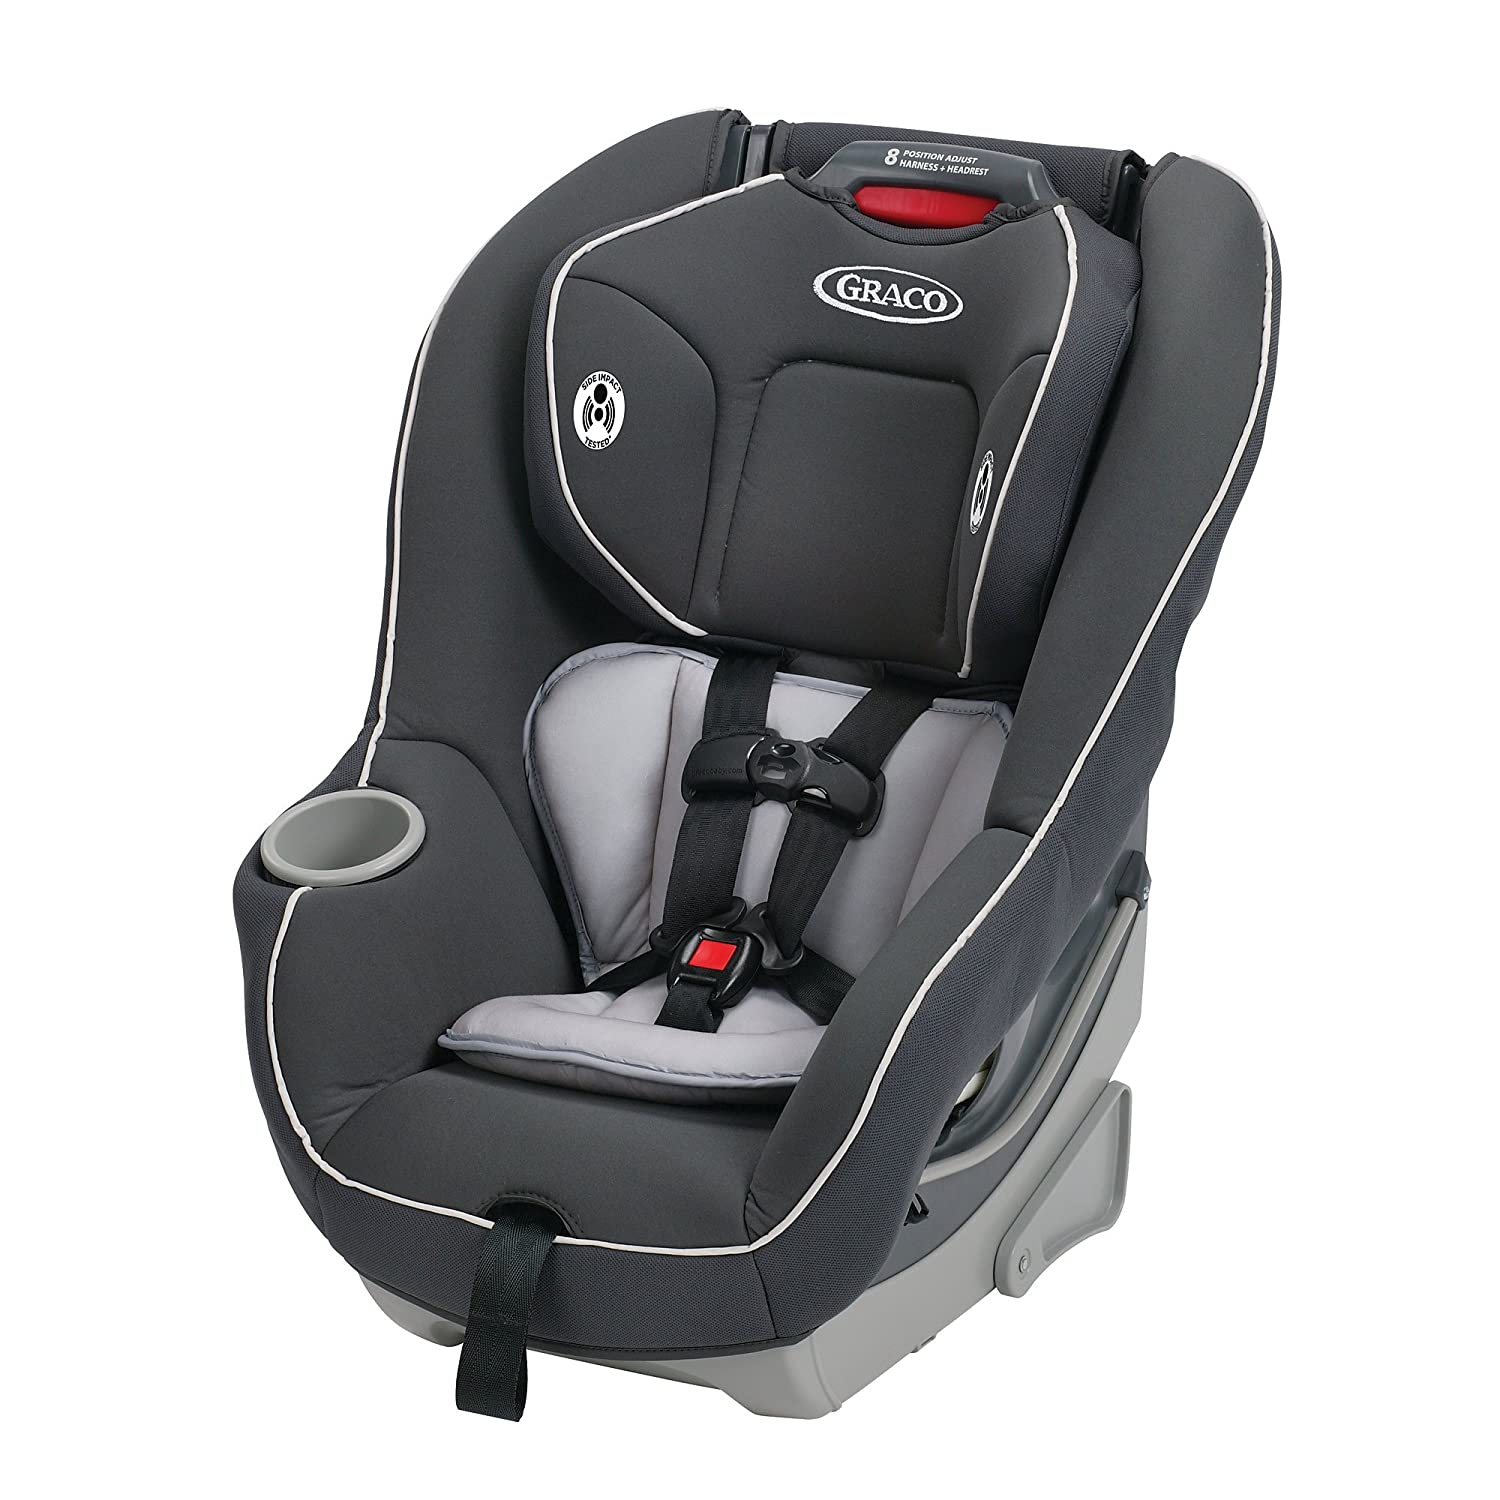 Graco nautilus 3 in 1 multi use car seat - Graco Fit4me 65 Convertible Baby Car Seat Flip Pictures To Pin On